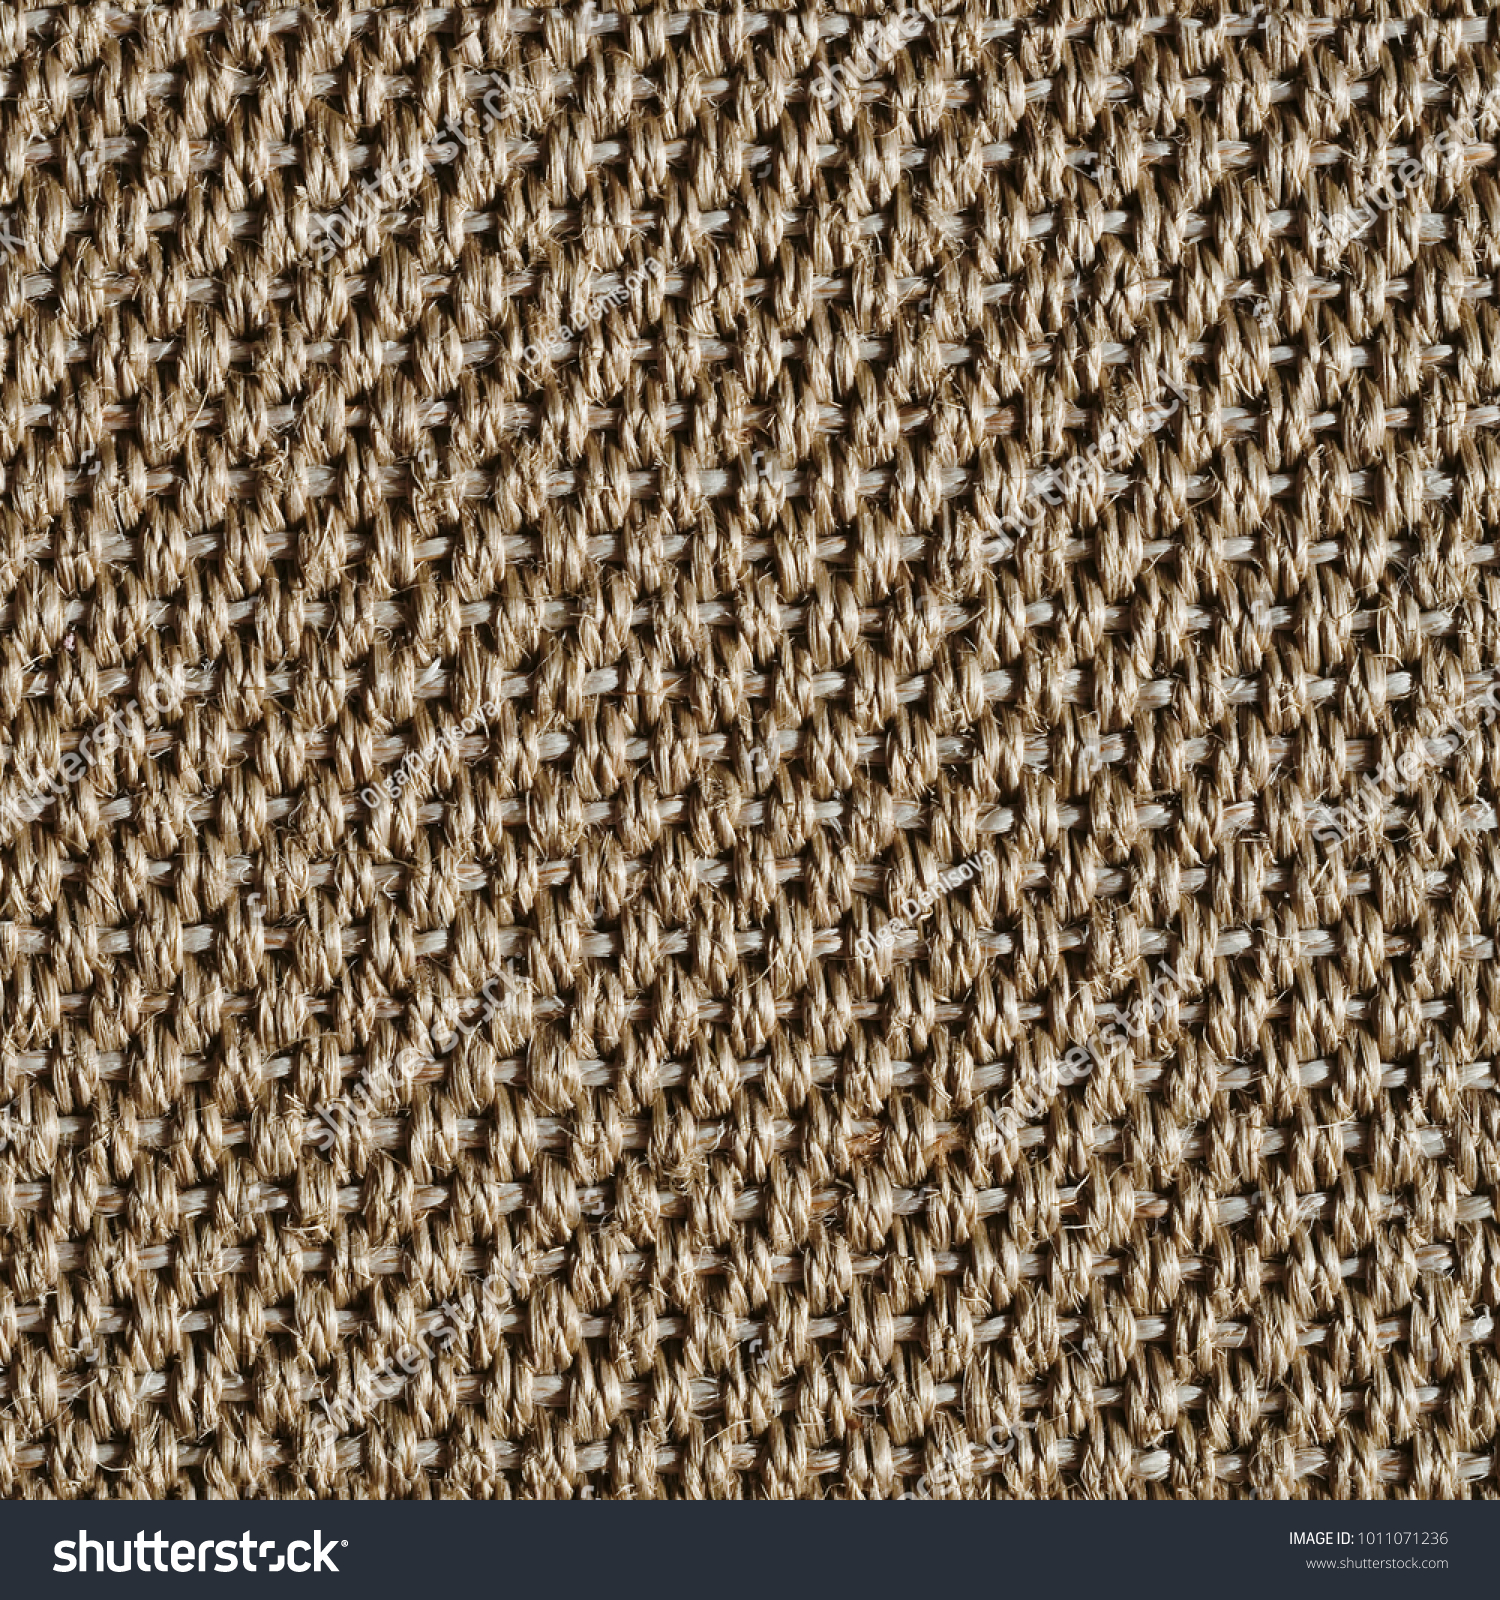 looking mat land runner and shipped grey to plain buy sisal mats mainland free home address rug uk rugs your style for any from thin of pile border have a simple it